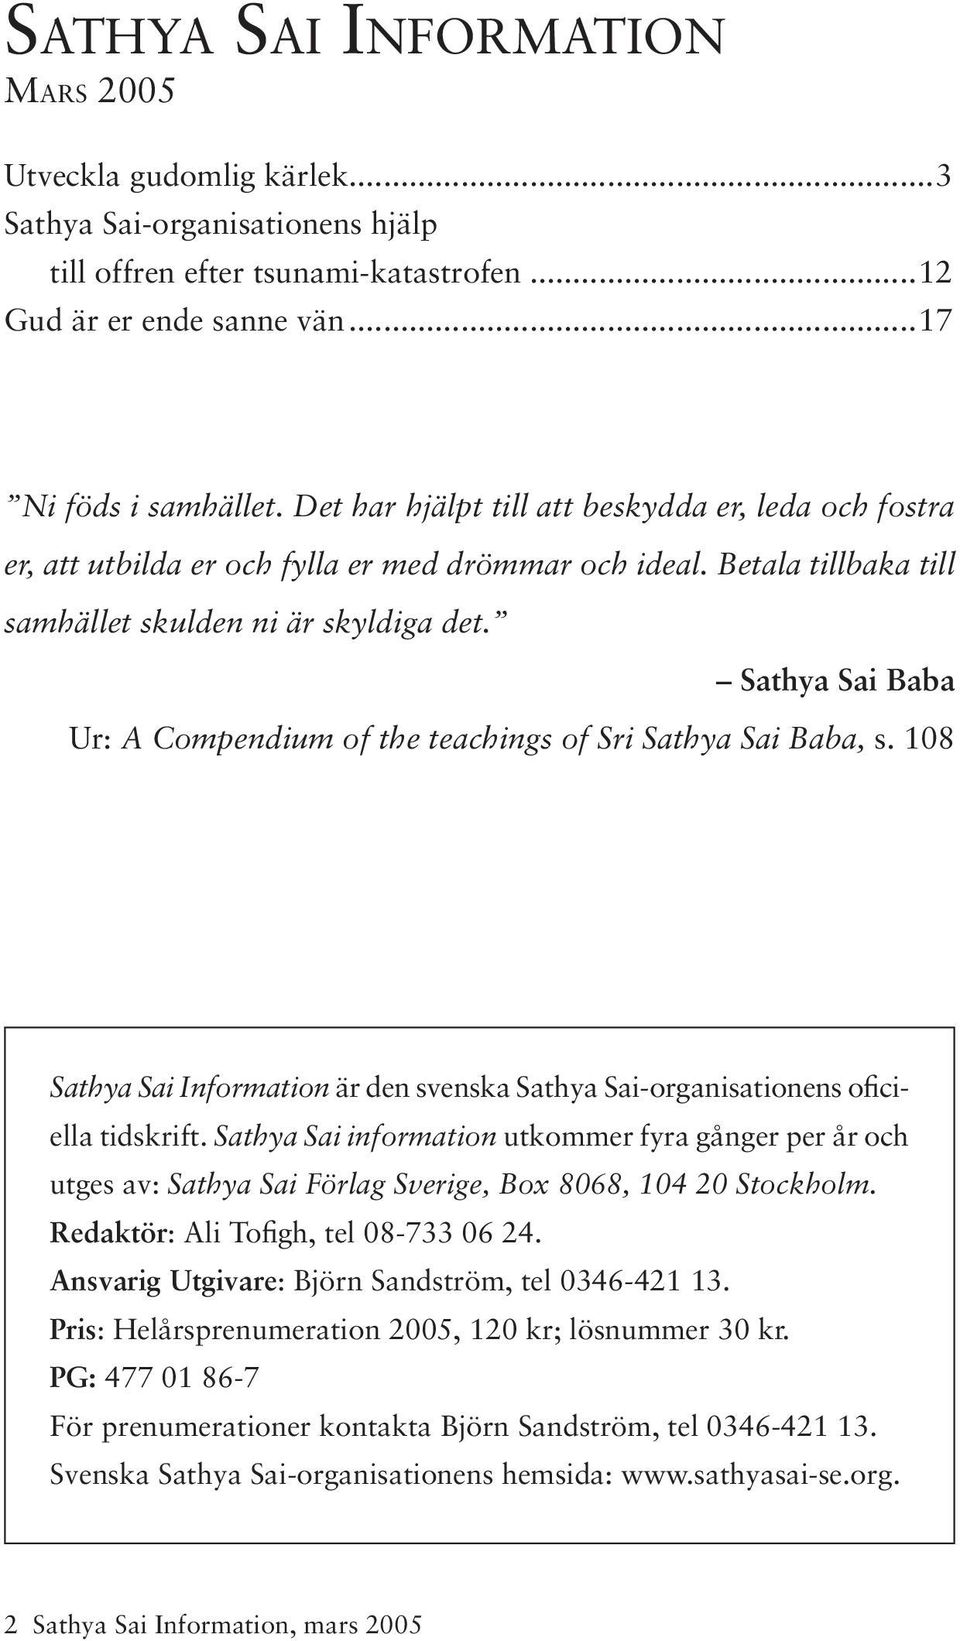 Sathya Sai Baba Ur: A Compendium of the teachings of Sri Sathya Sai Baba, s. 108 Sathya Sai Information är den svenska Sathya Sai-organisationens oficiella tidskrift.